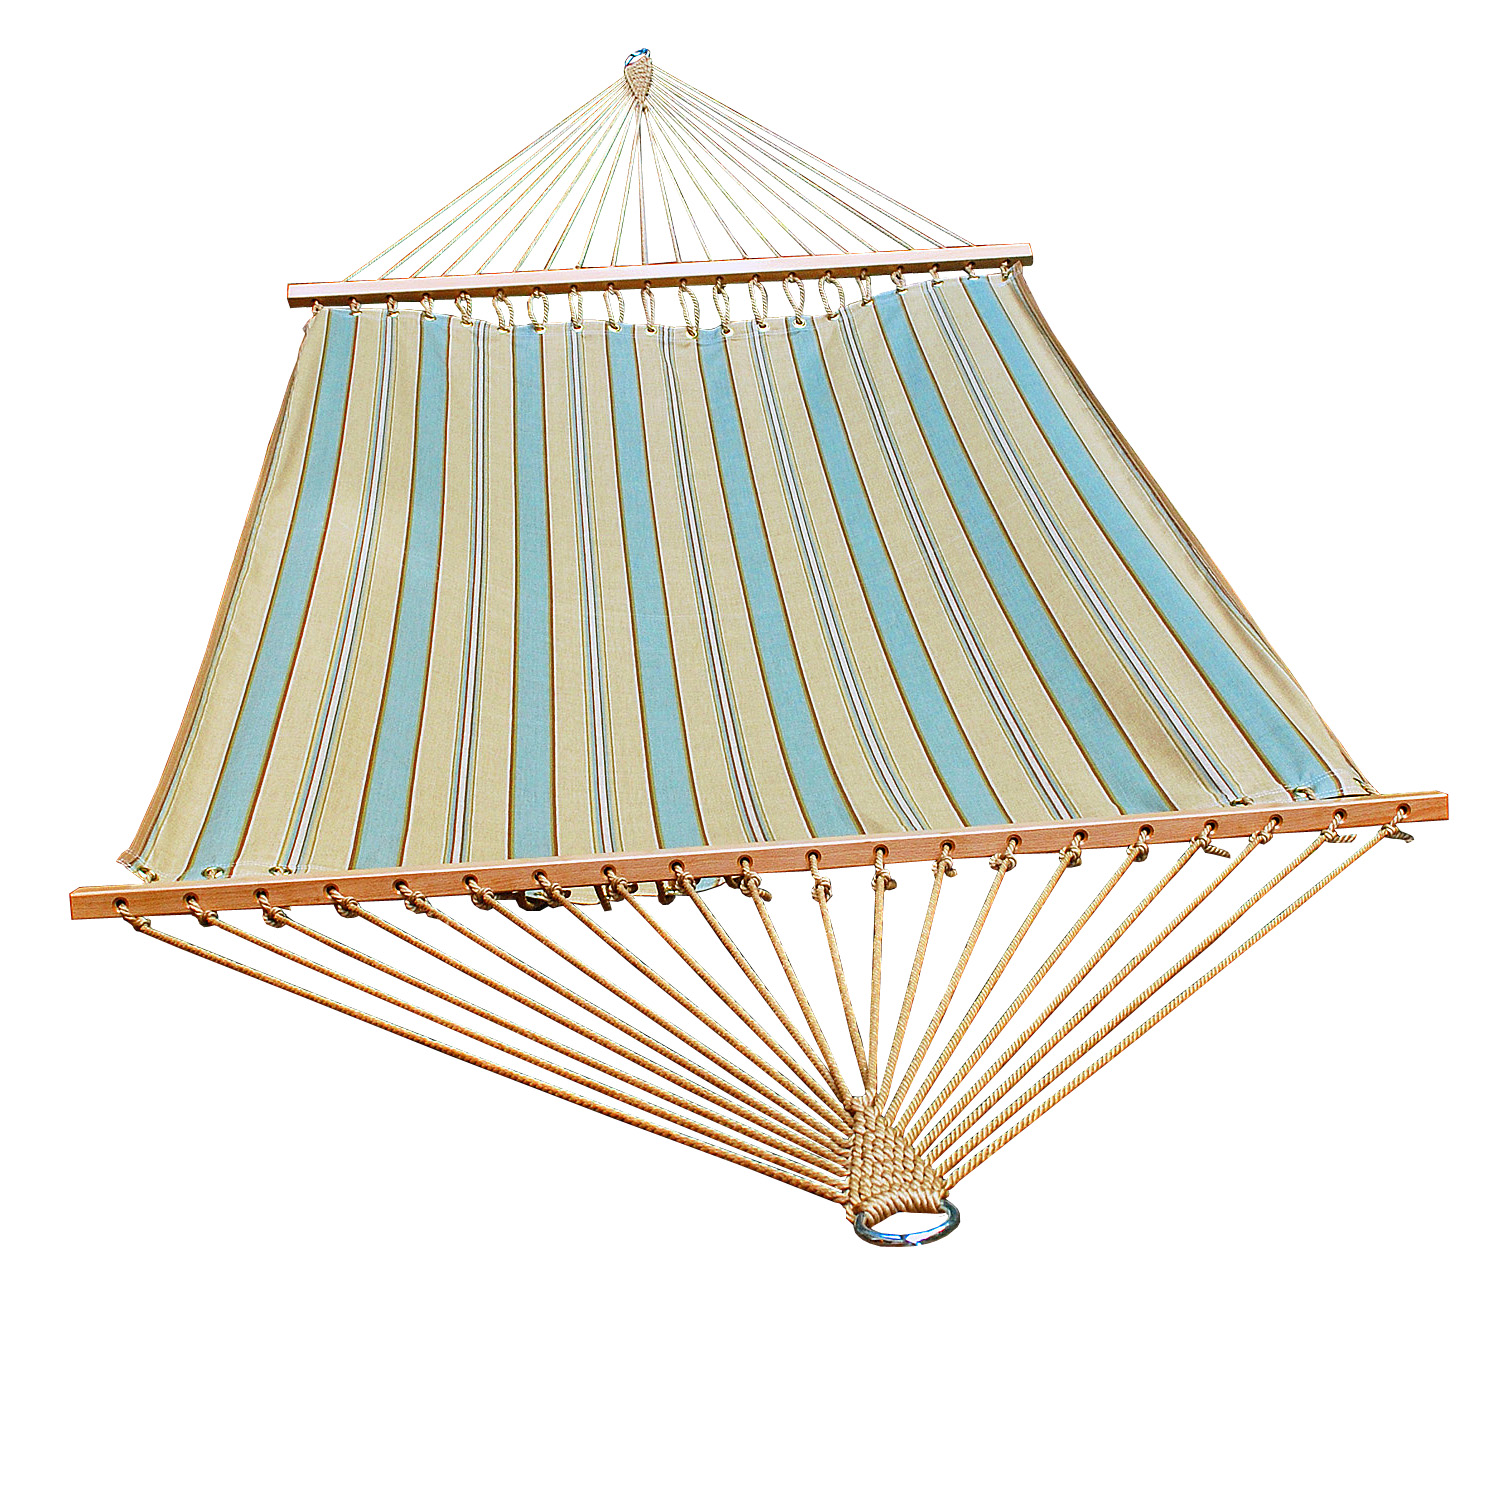 13' Fabric Hammock - Crestwood Spa Stripe